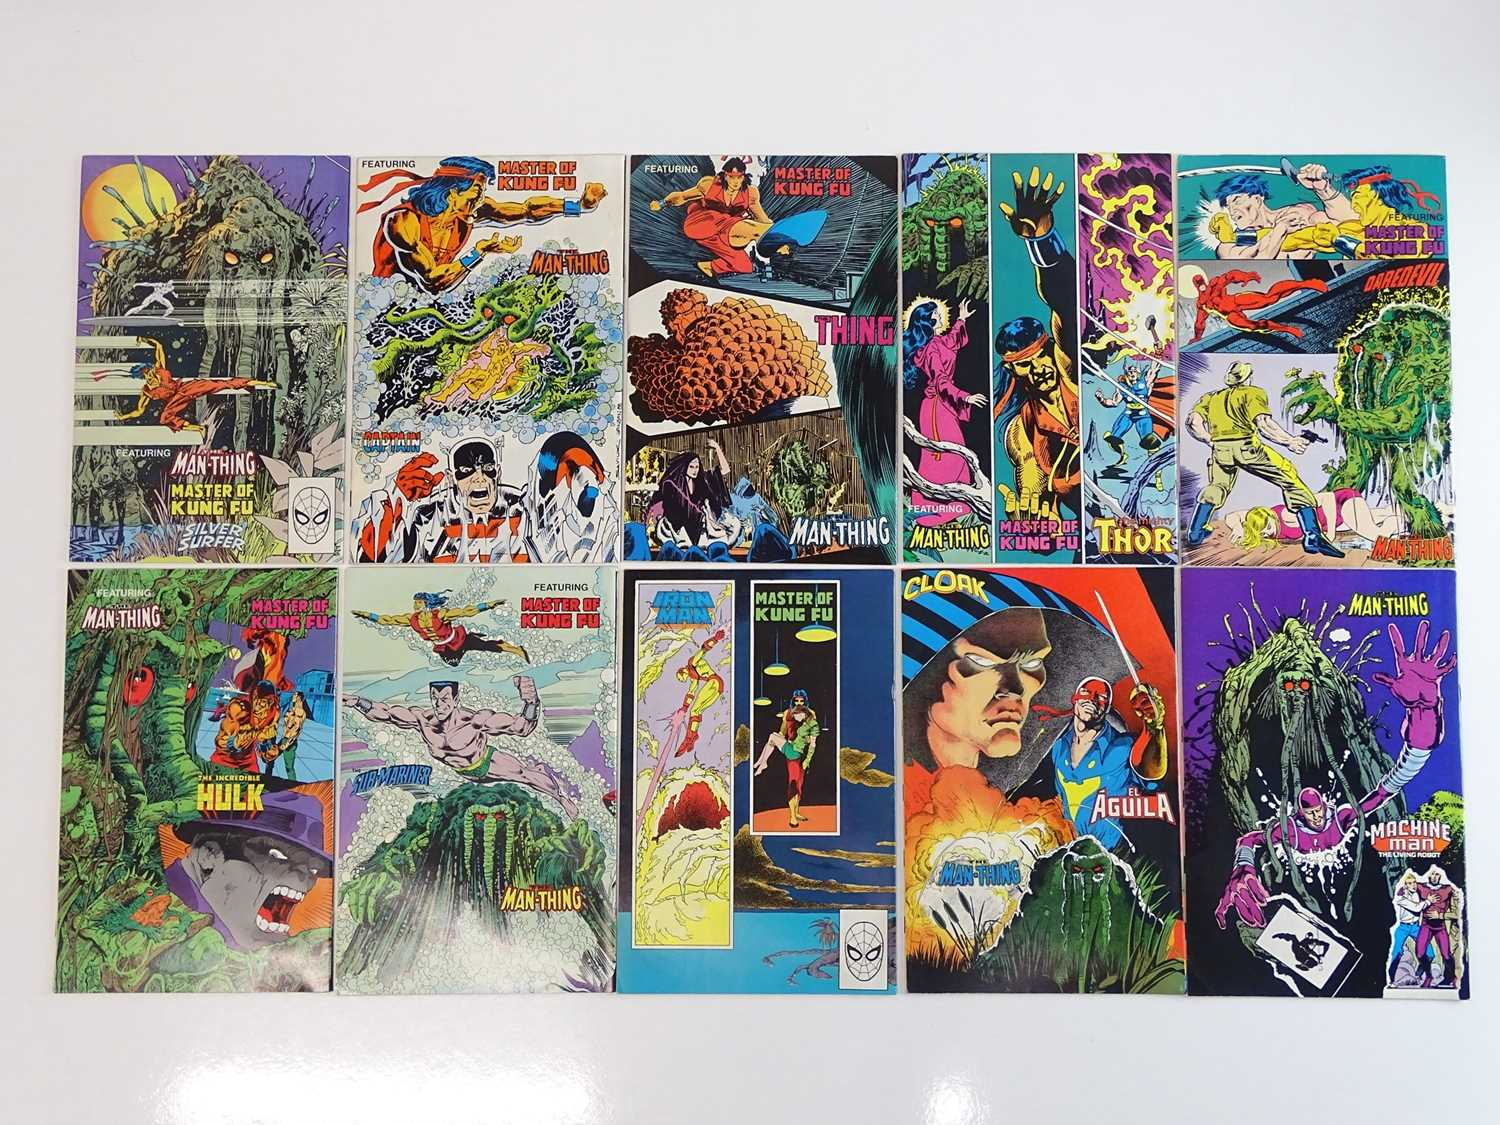 MARVEL COMICS PRESENTS: WOLVERINE - (10 in Lot) - (1988/89 - MARVEL) - Complete 10 issue Wolverine - Image 2 of 2